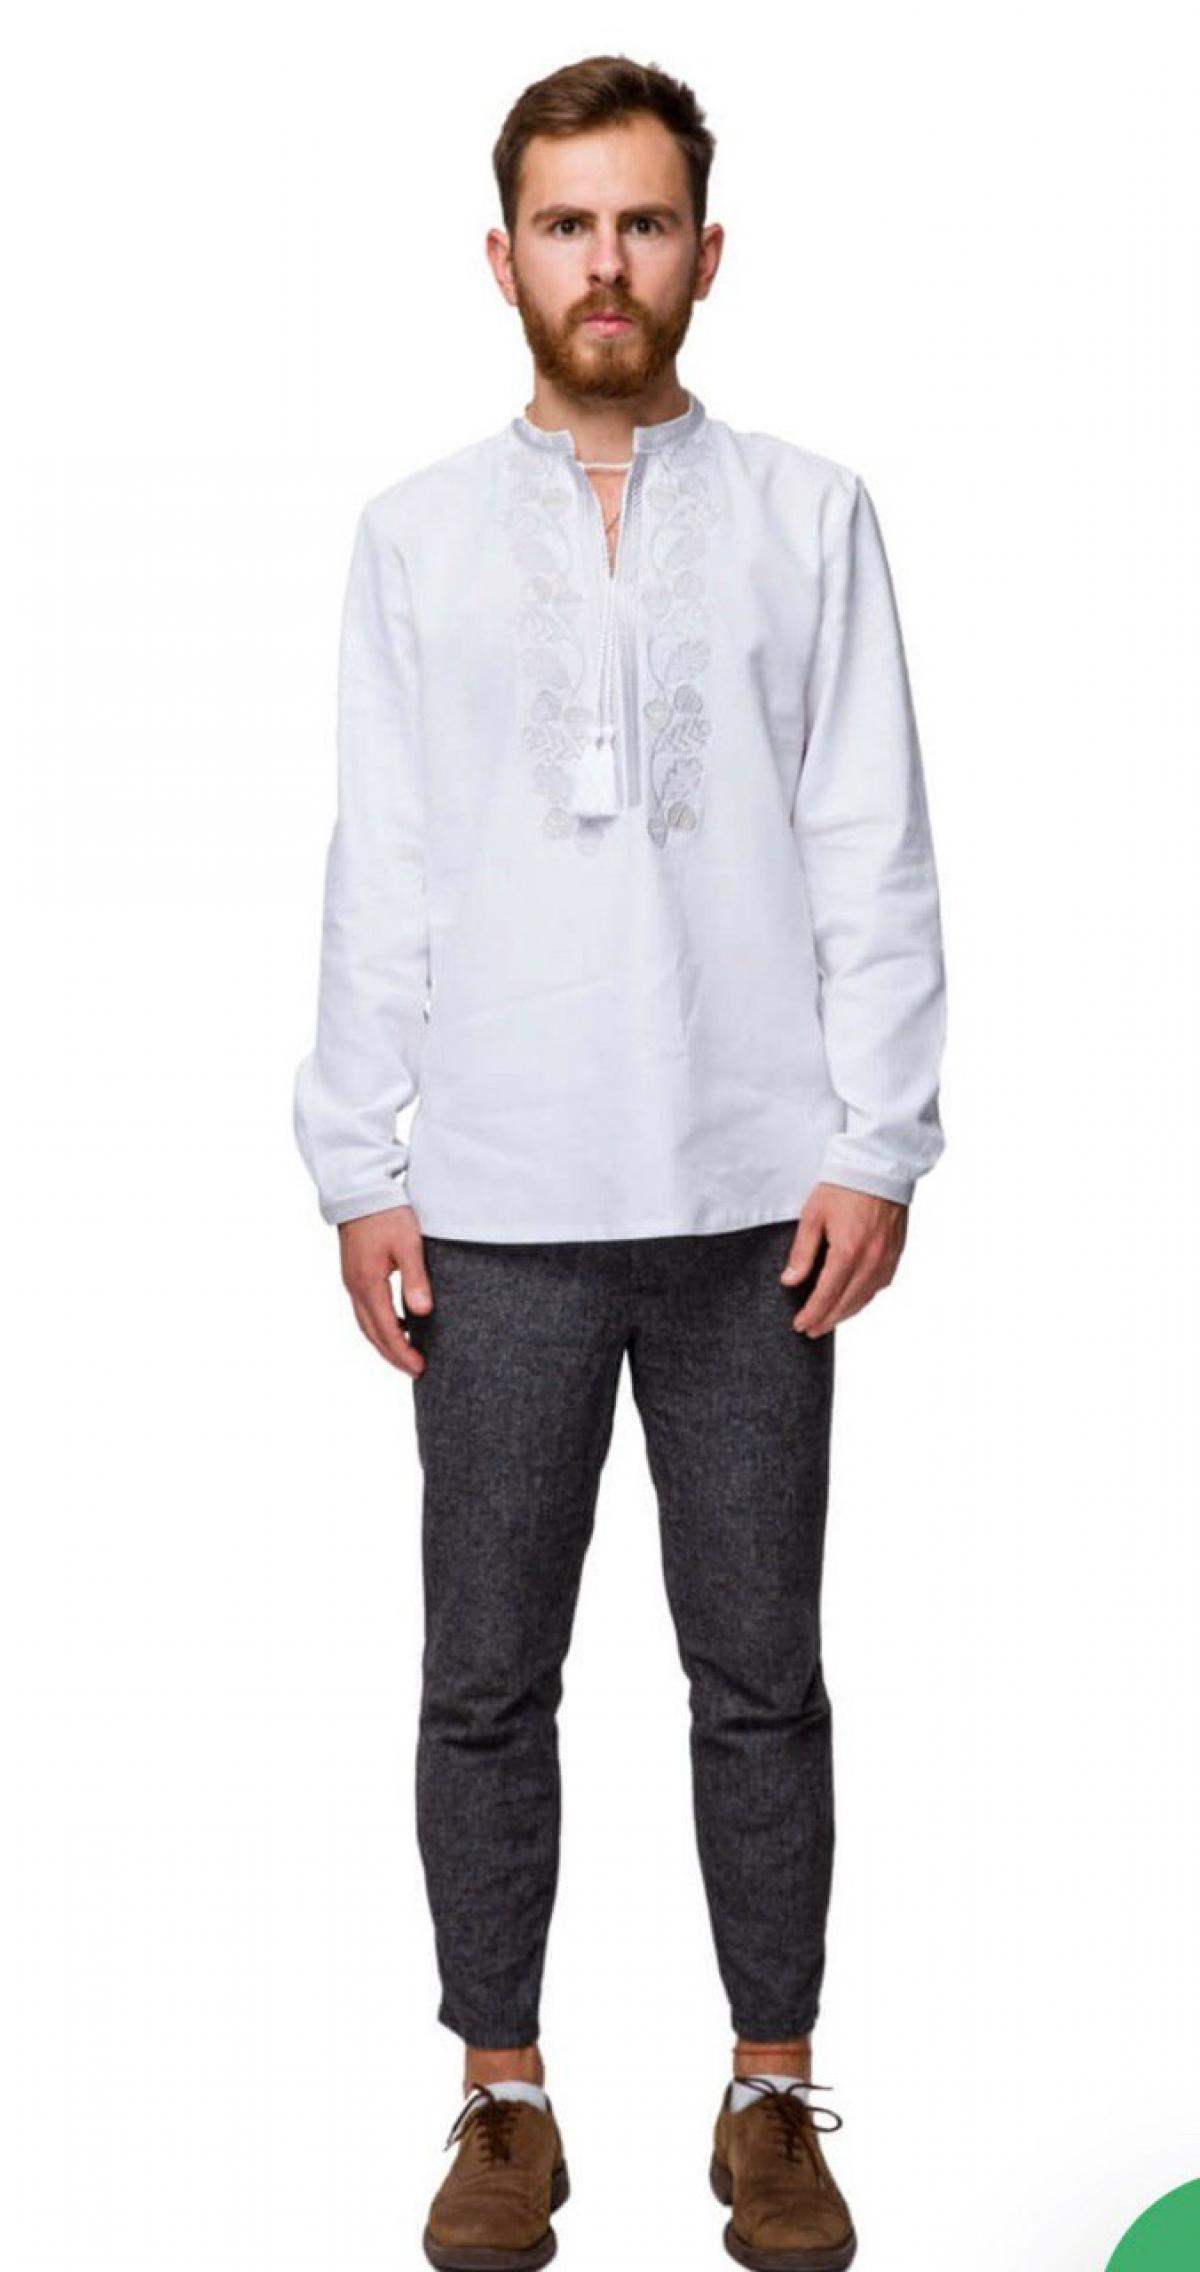 White men's embroidered shirt with silver embroidery  . Photo №2. | Narodnyi dim Ukraine